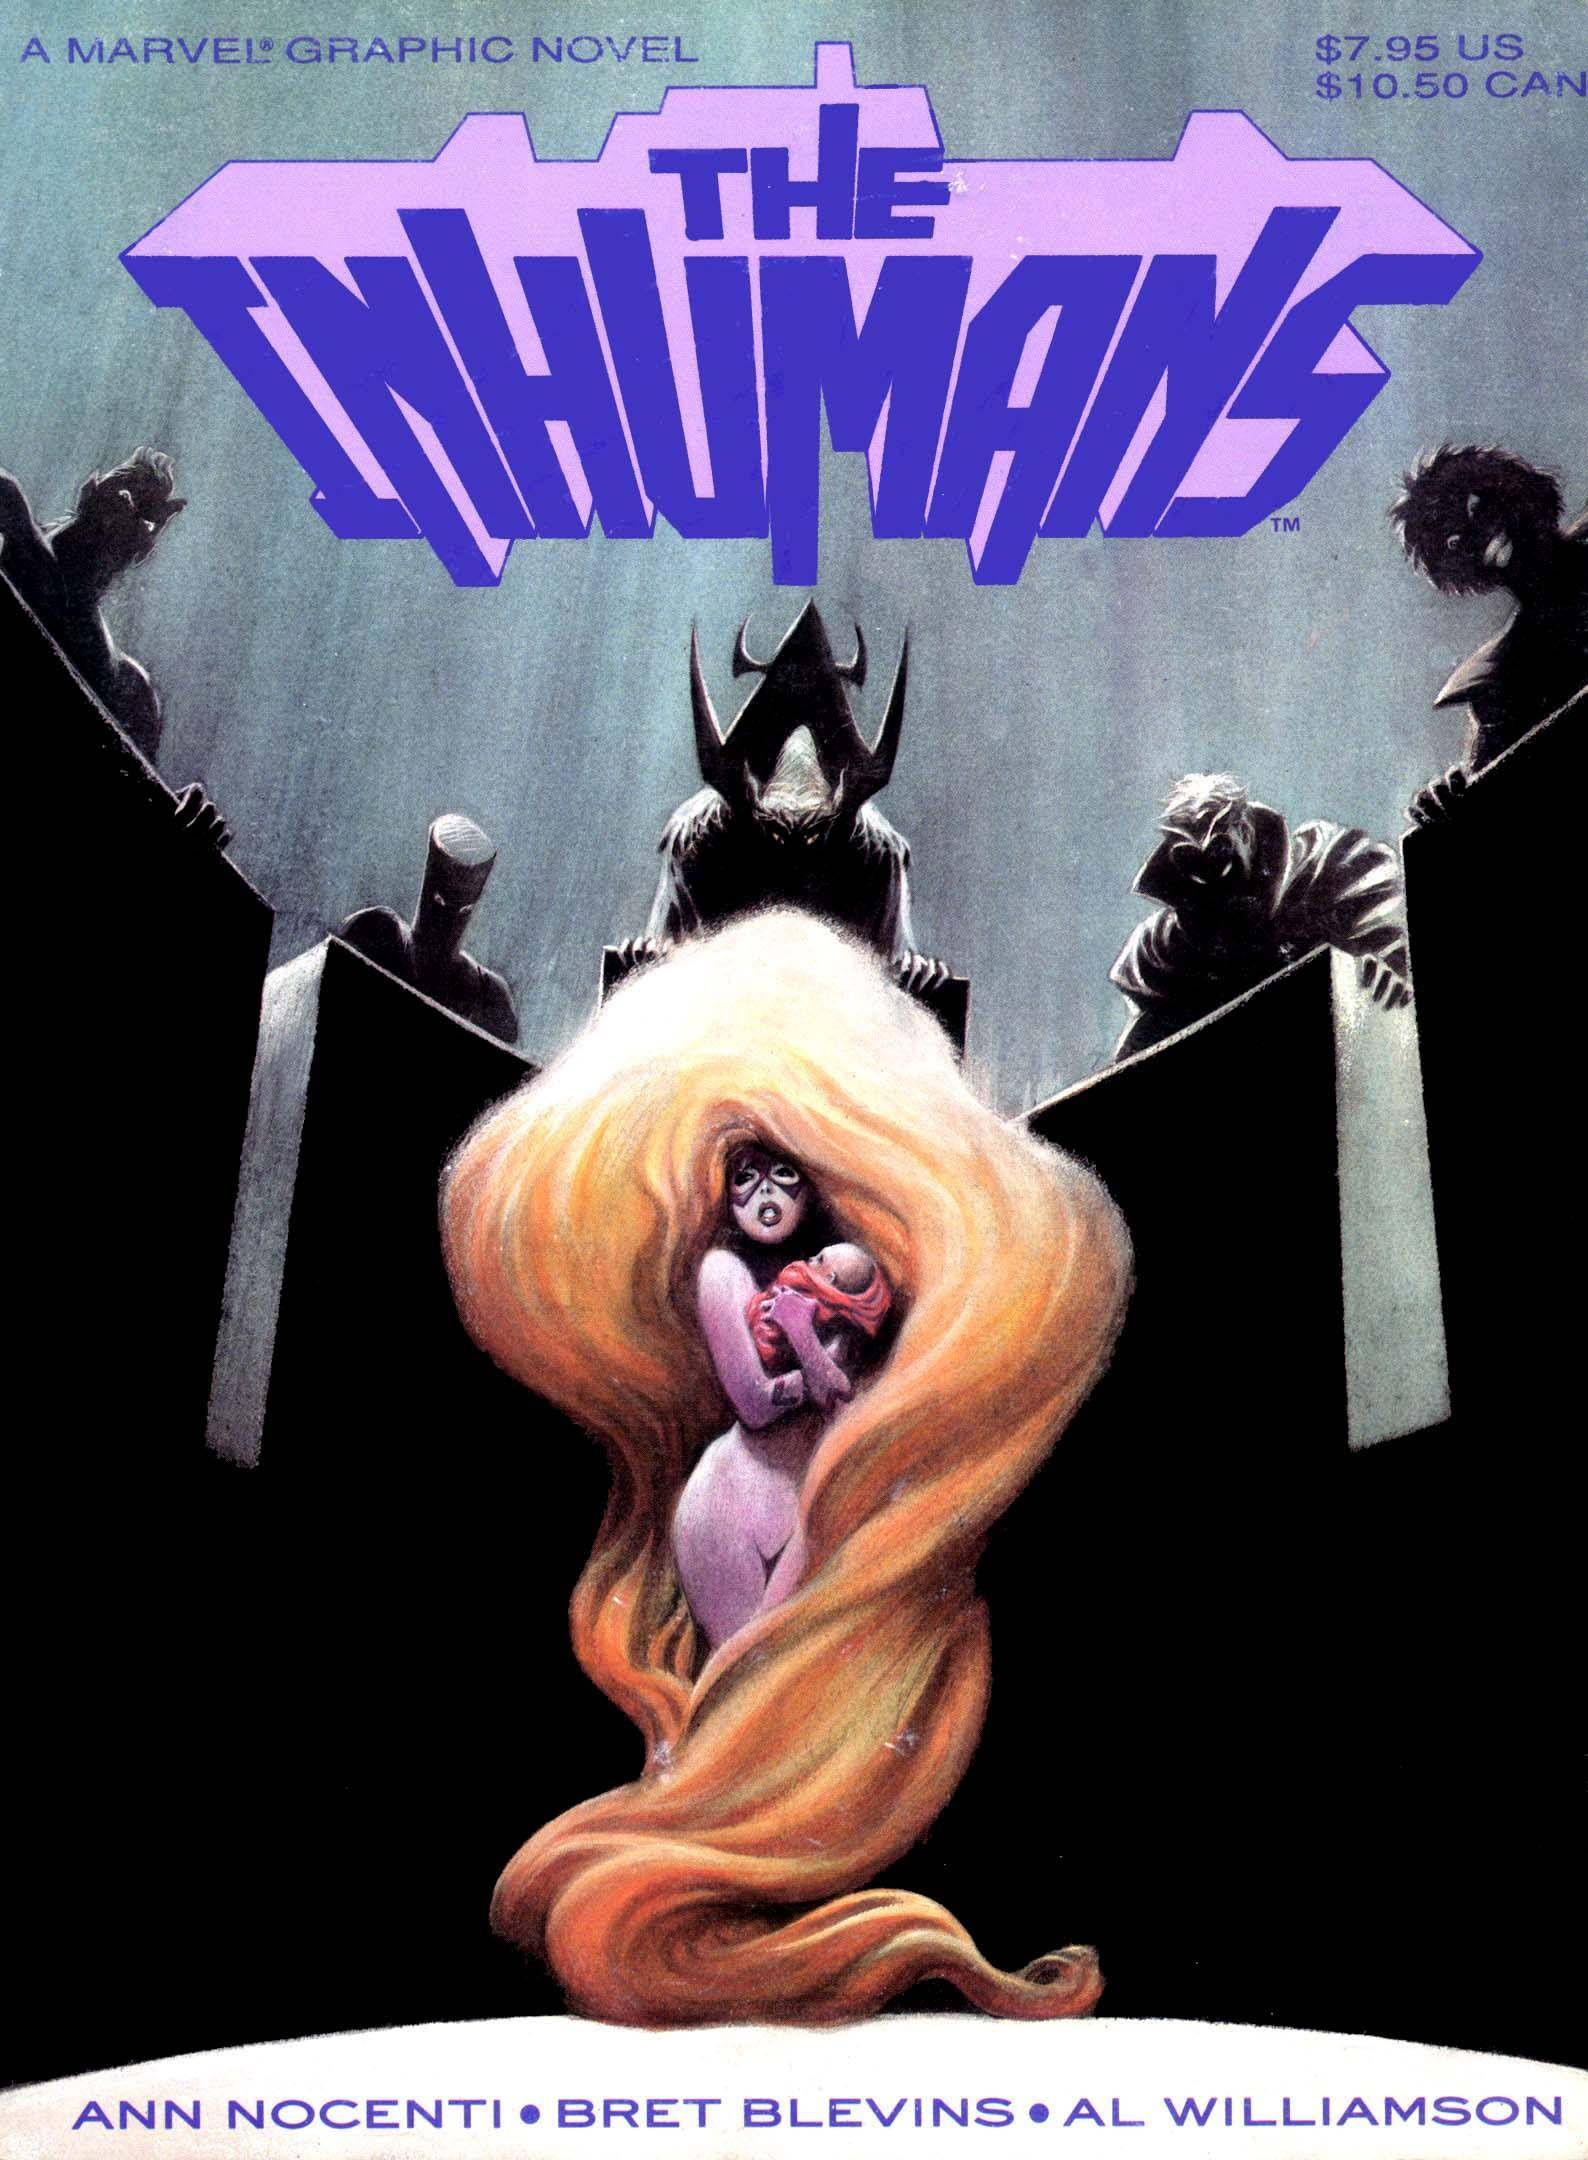 Marvel Graphic Novel 39 - The Inhumans 1988